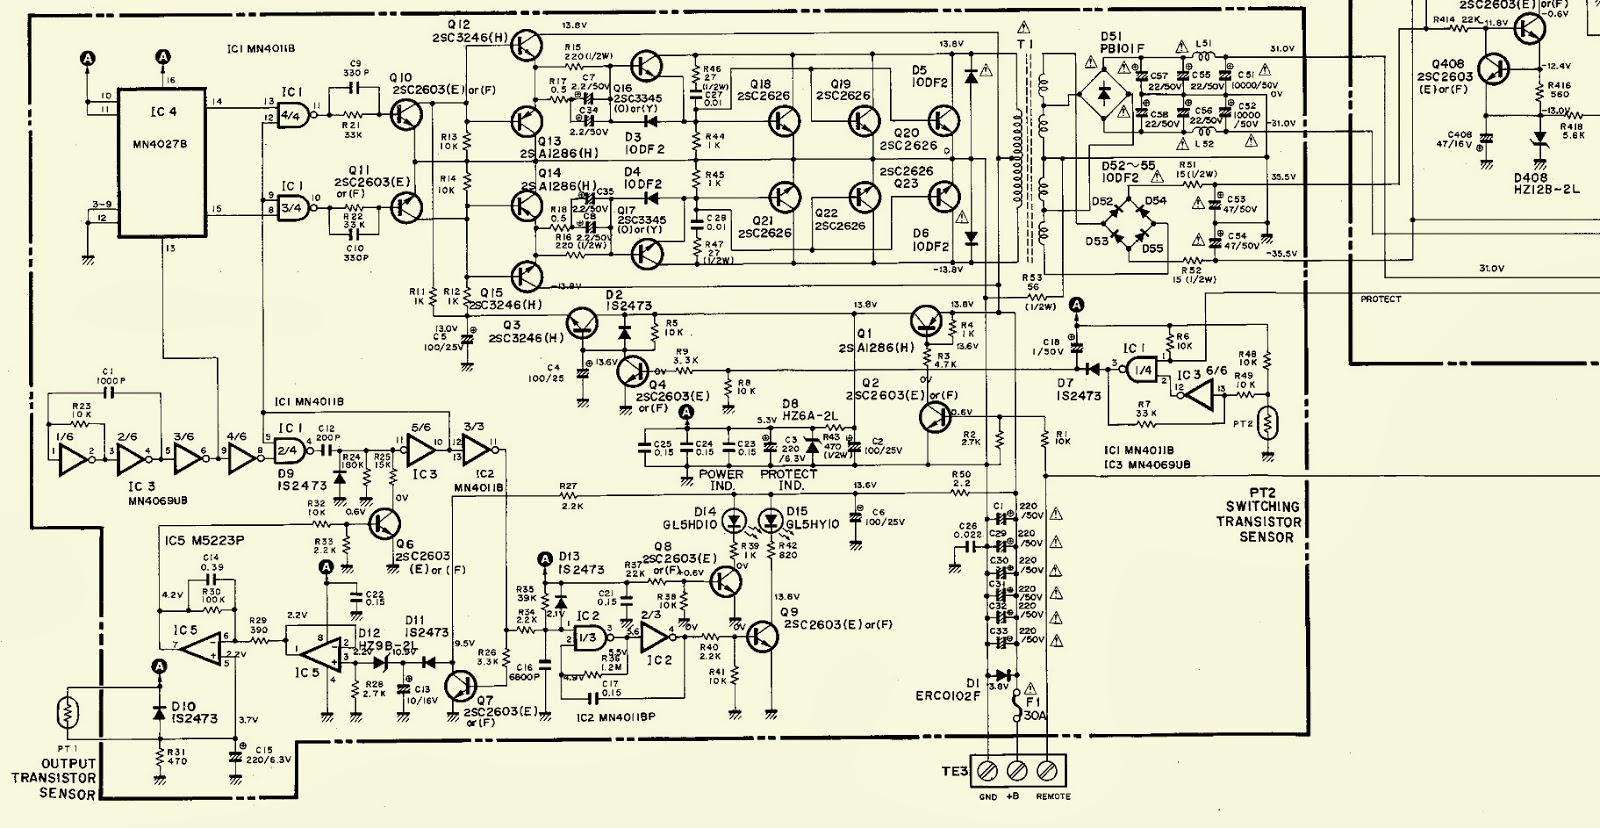 2.bmp harman kardon ca260 hi fi car amplifier schematic diagram wiring diagram for 2000 camaro at fashall.co